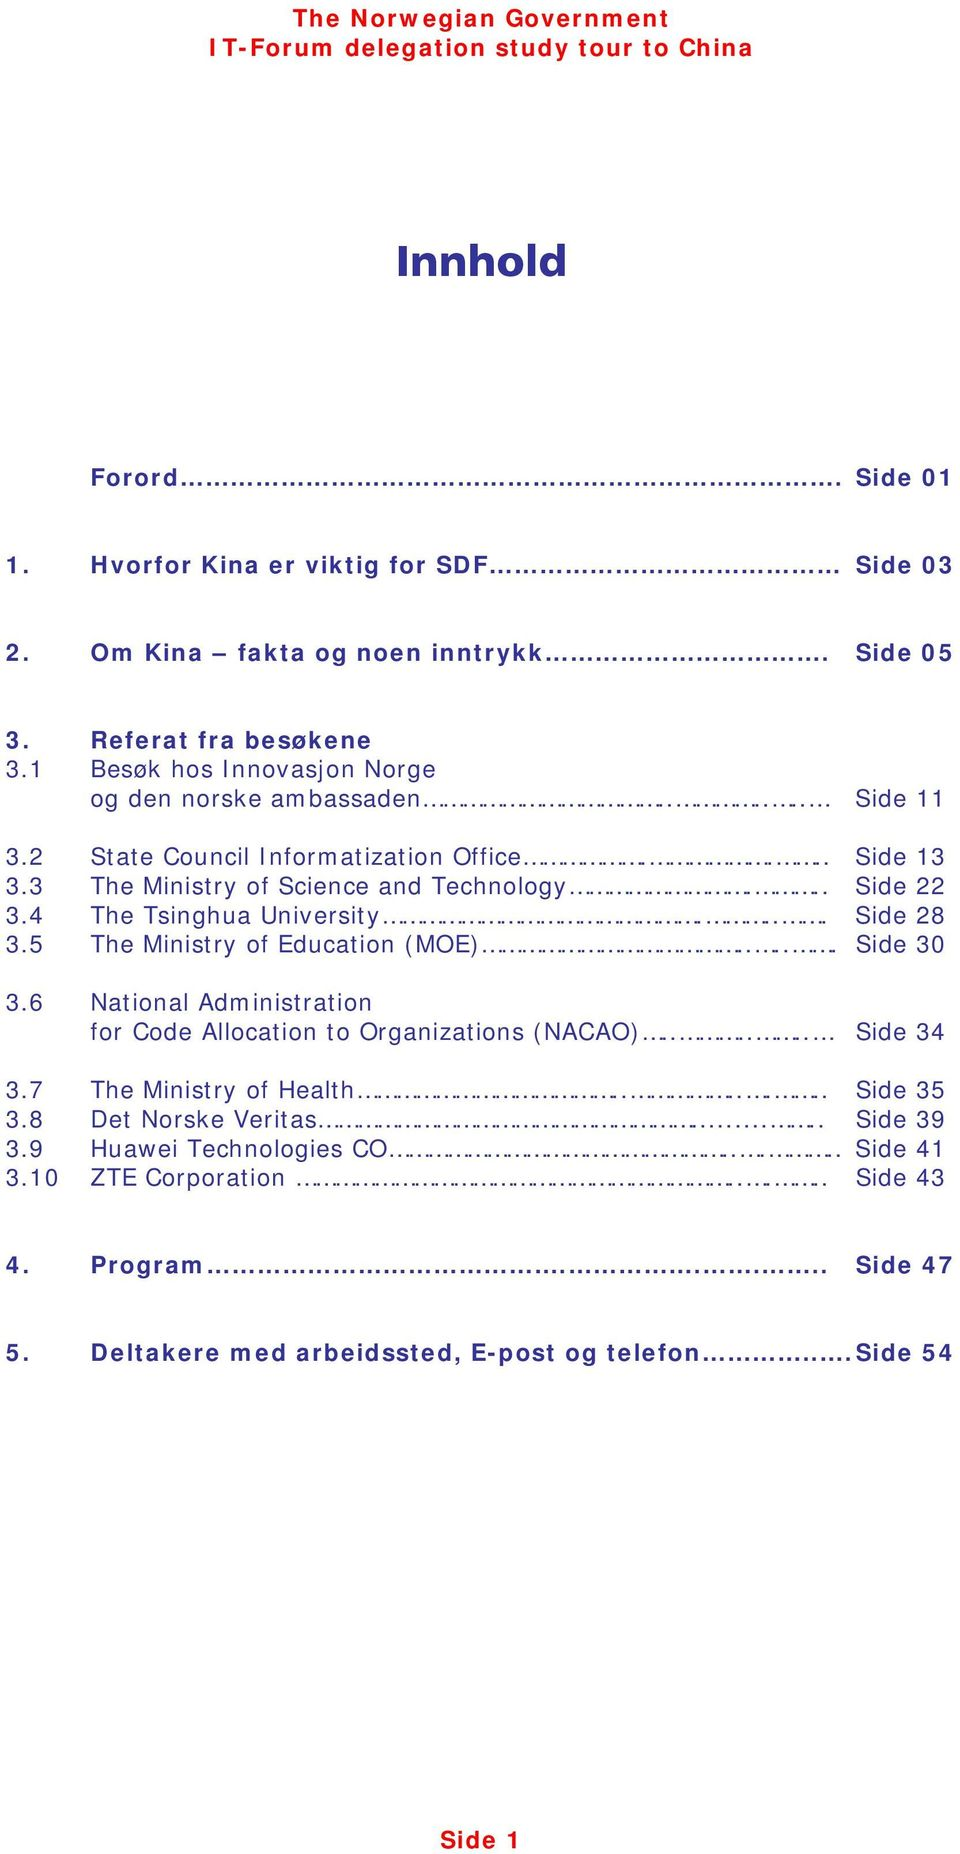 4 The Tsinghua University.... Side 28 3.5 The Ministry of Education (MOE)..... Side 30 3.6 National Administration for Code Allocation to Organizations (NACAO)...... Side 34 3.